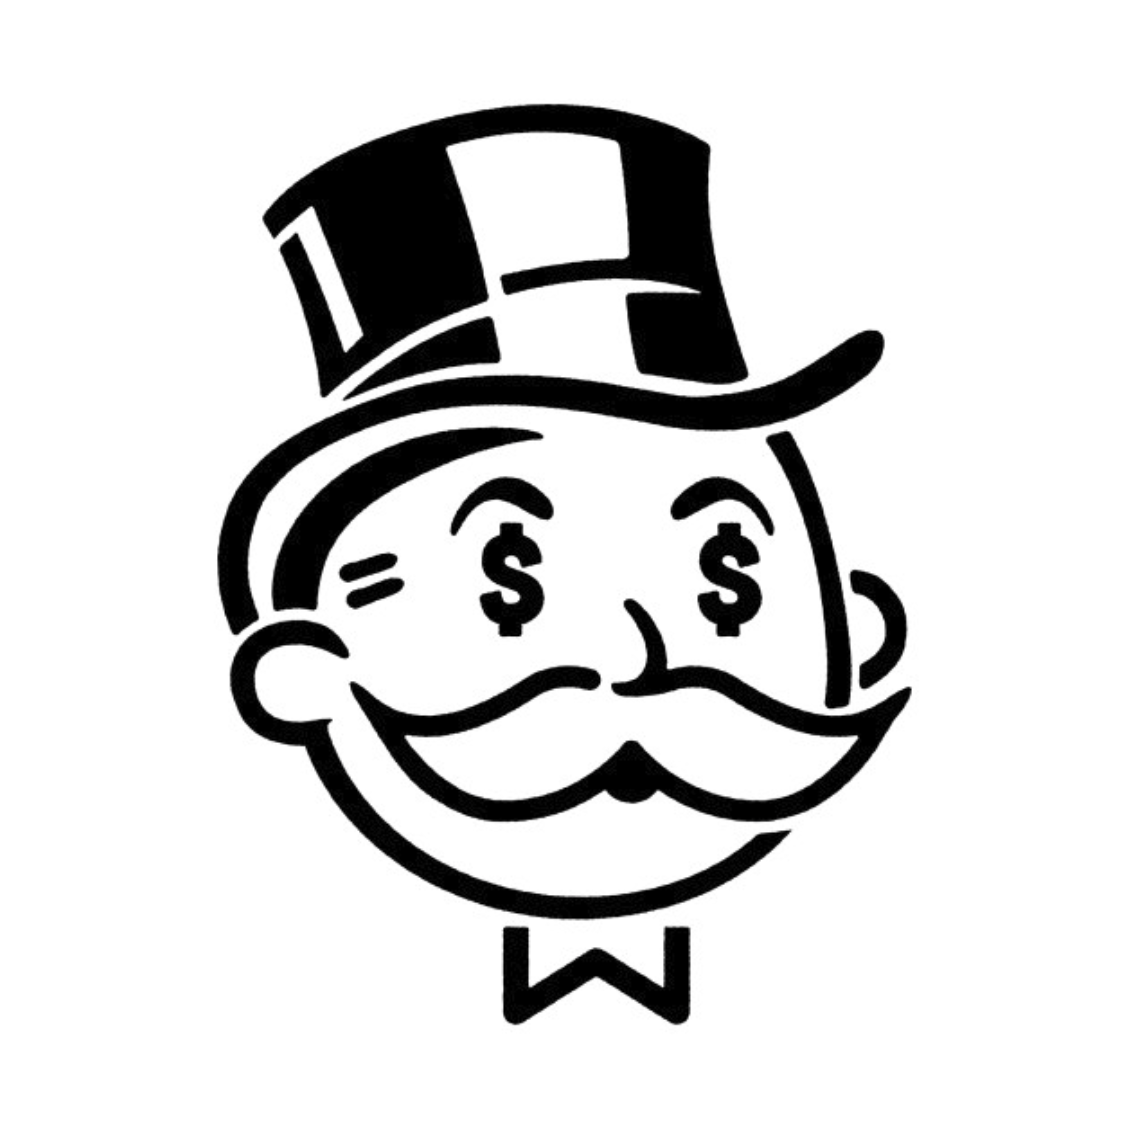 Monopoly Man Drawing.